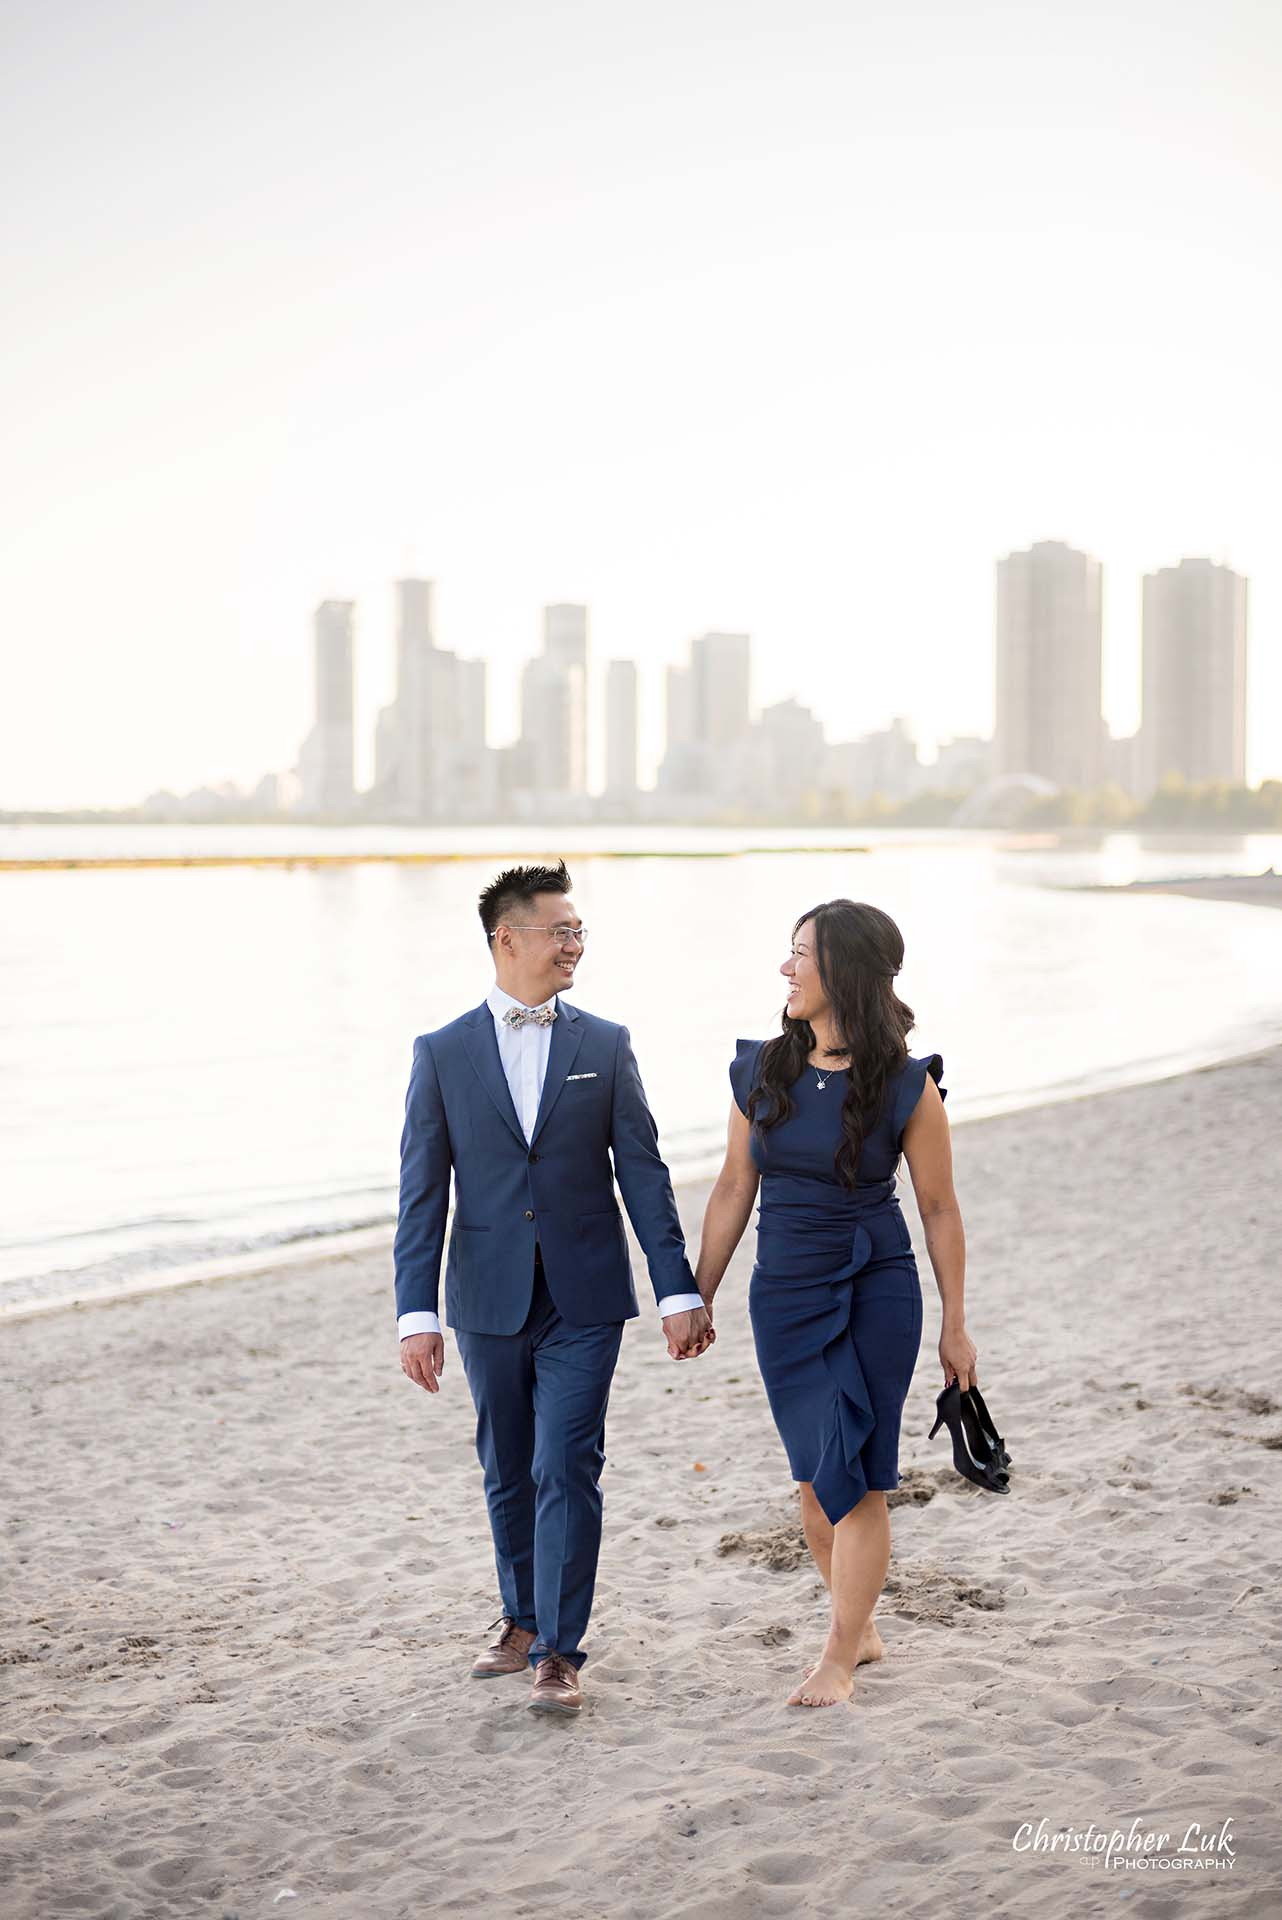 Christopher Luk Toronto Wedding Photographer - Engagement Photography - Sunnyside Pavilion Park Beach Boardwalk Toronto - Bride and Groom Natural Candid Photojournalistic Humber Bay Archway Arch Bridge Skyline Walking Vertical Holding Shoes